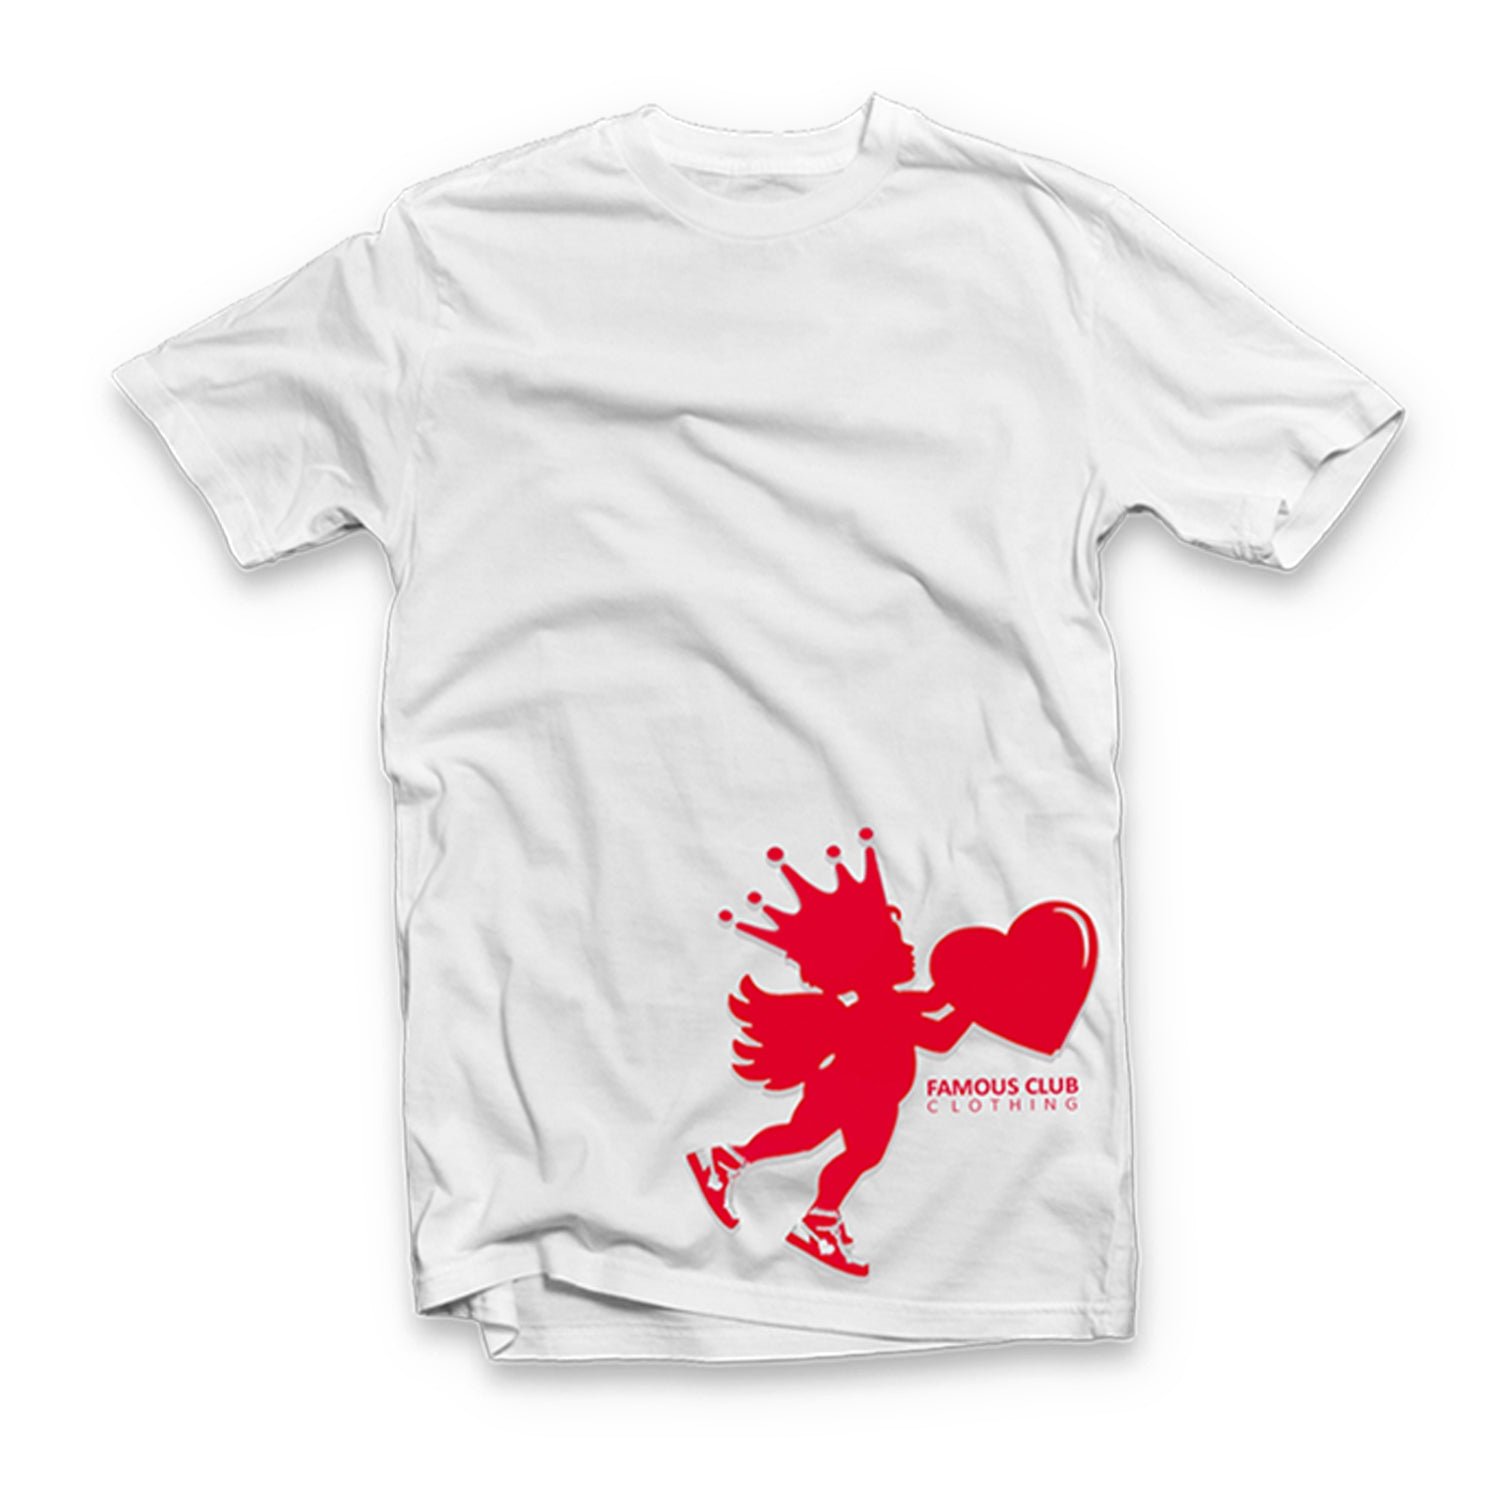 VALENTINE'S DAY CUPID T-SHIRT